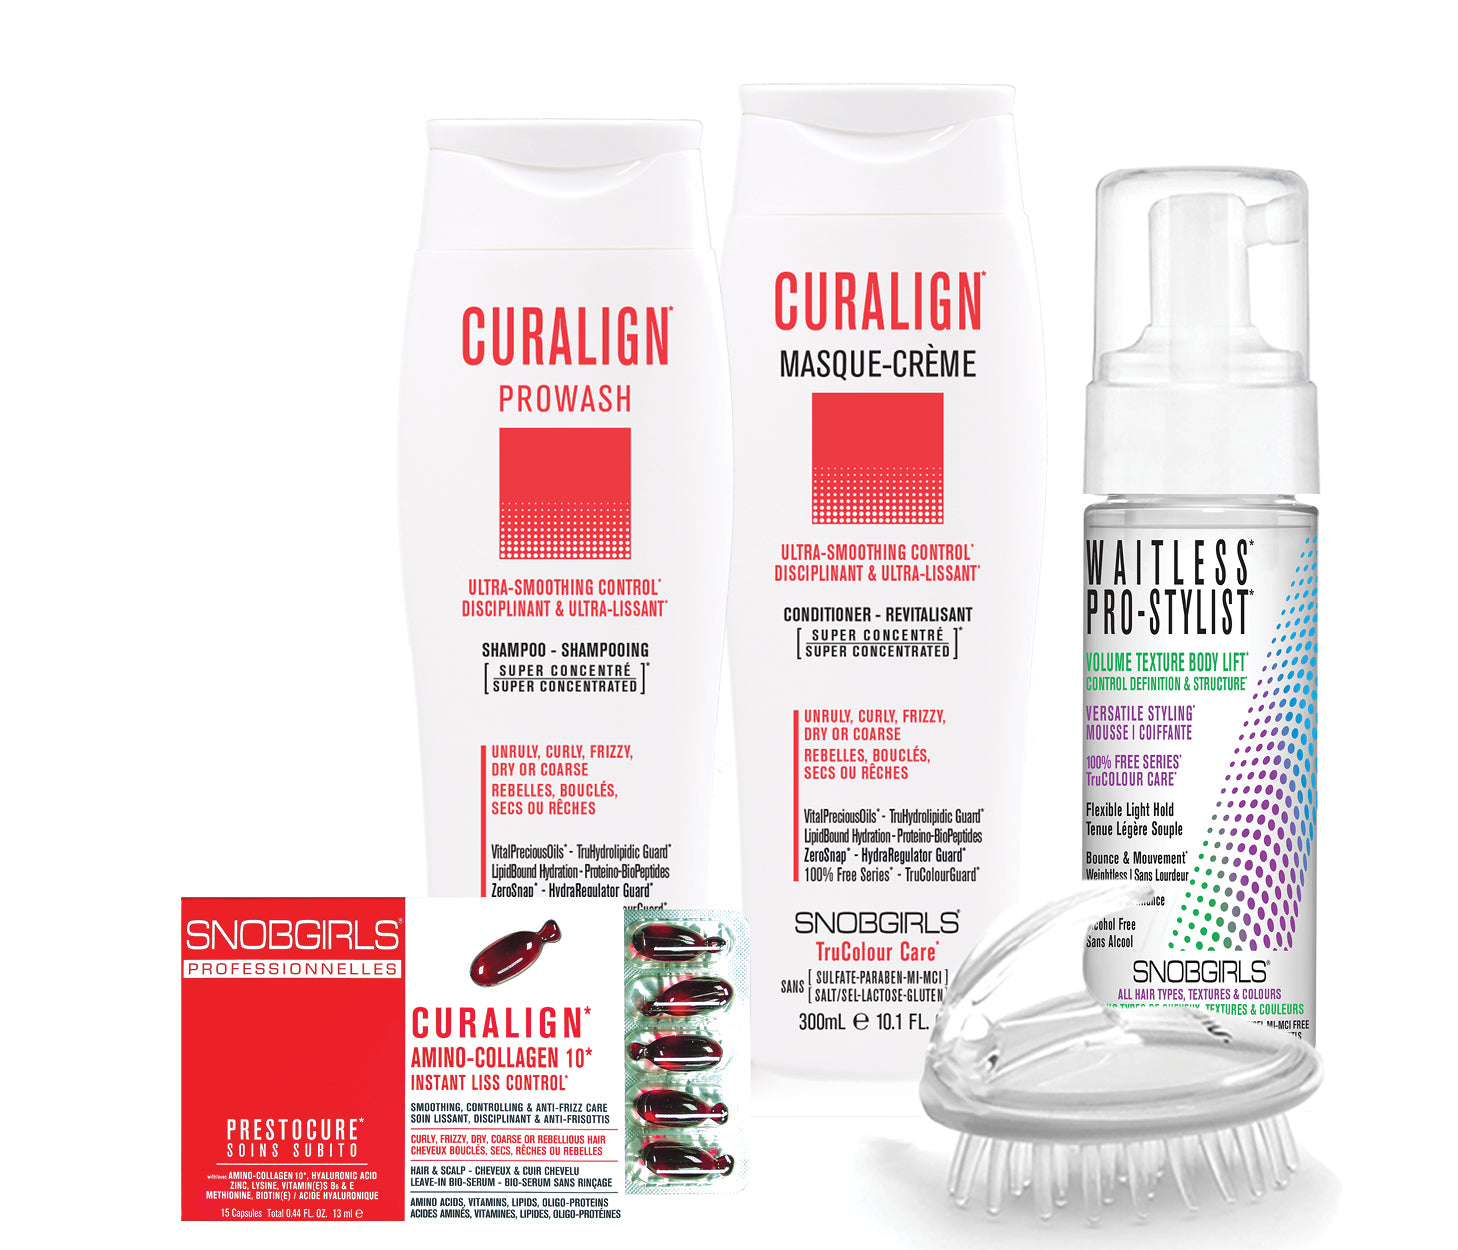 CURALIGN BOX ULTRA-SMOOTHING CONTROL Bundle